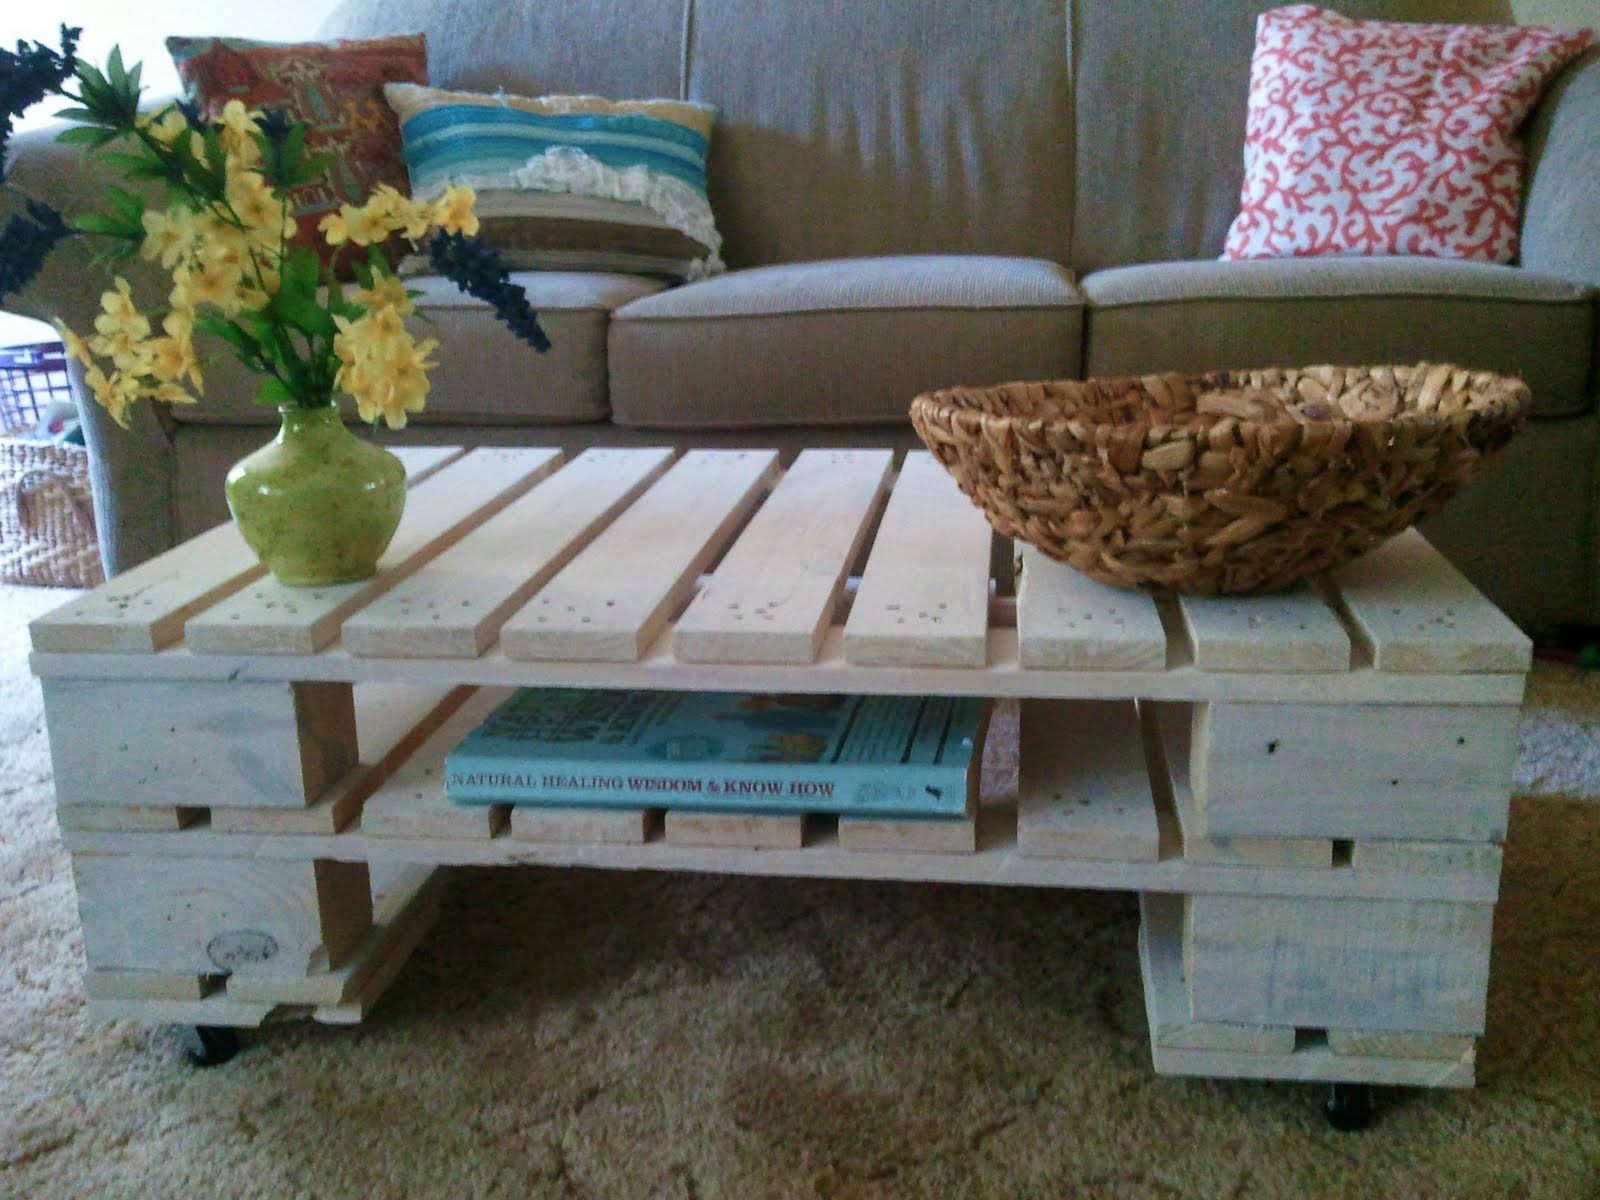 wood pallet table While browsing Pinterest the other day I came